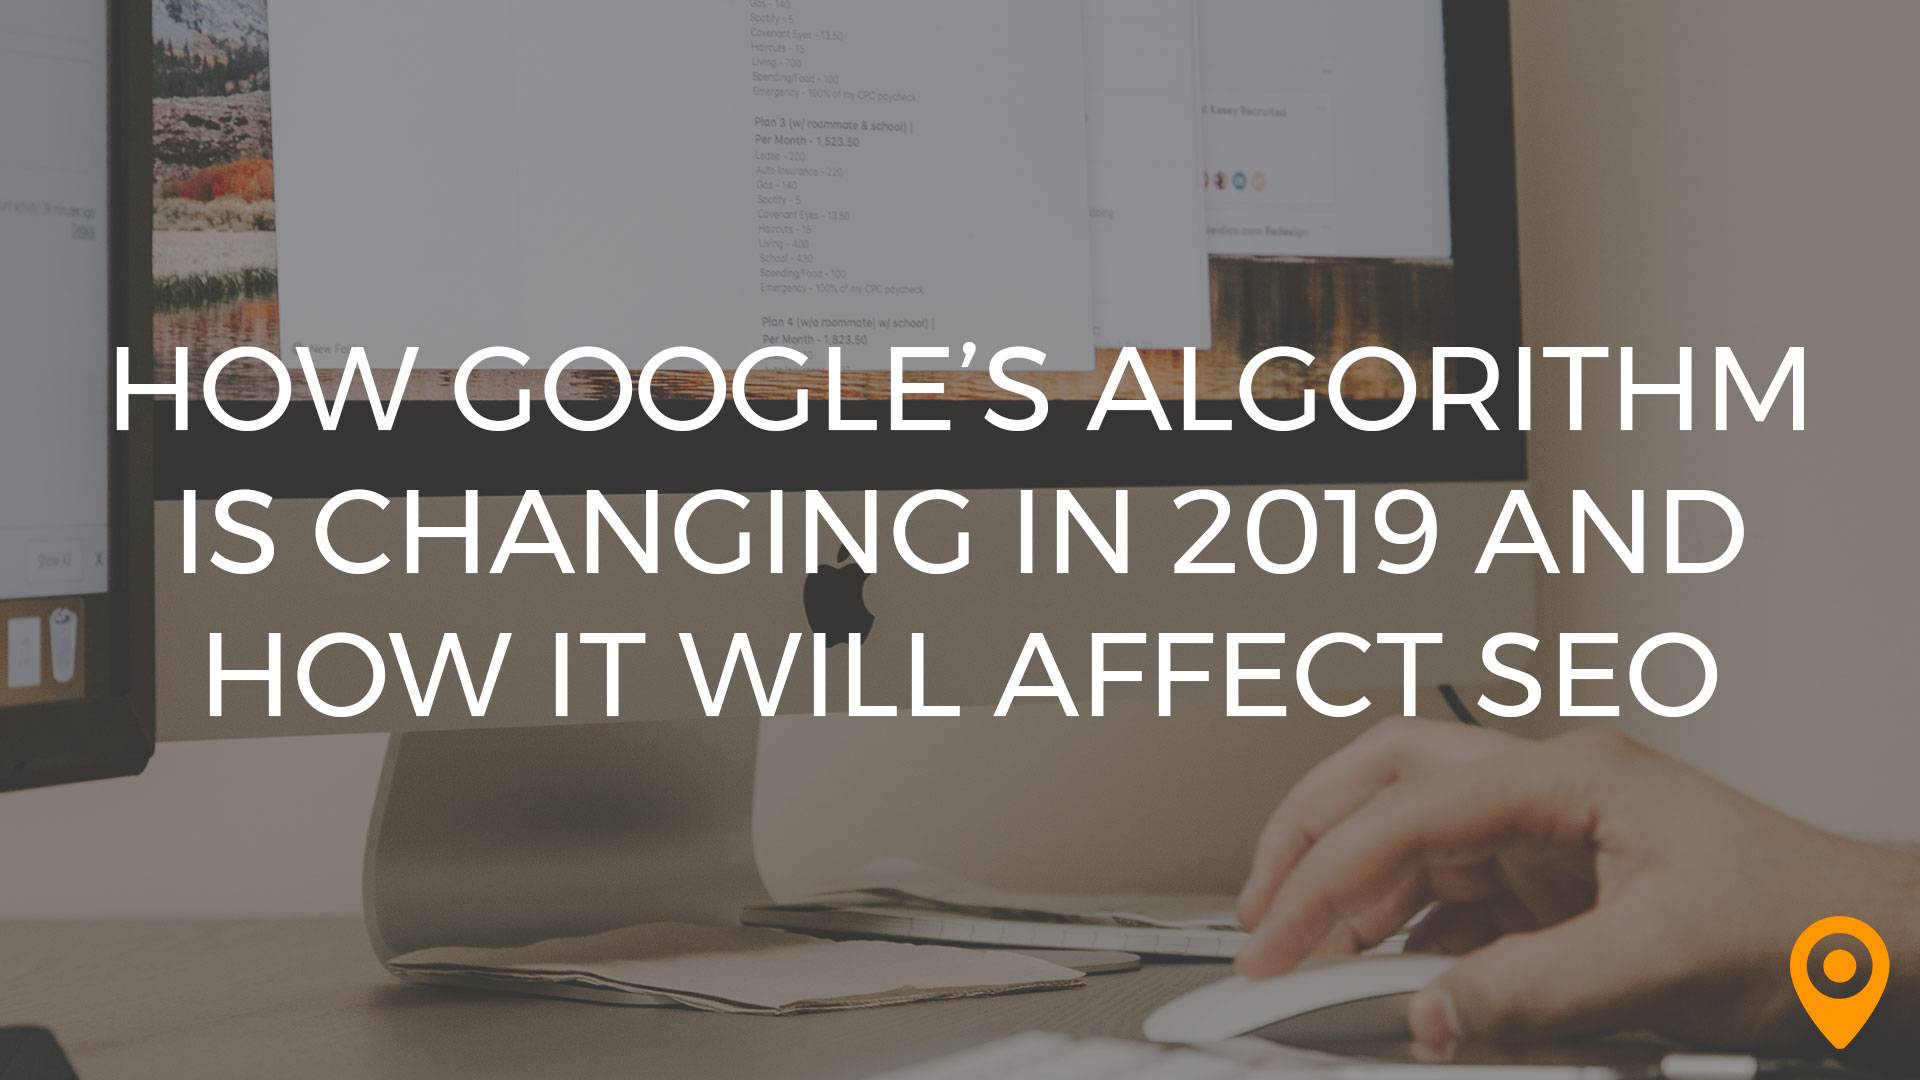 How Google's Algorithm Is Changing in 2019 and How it Will Affect